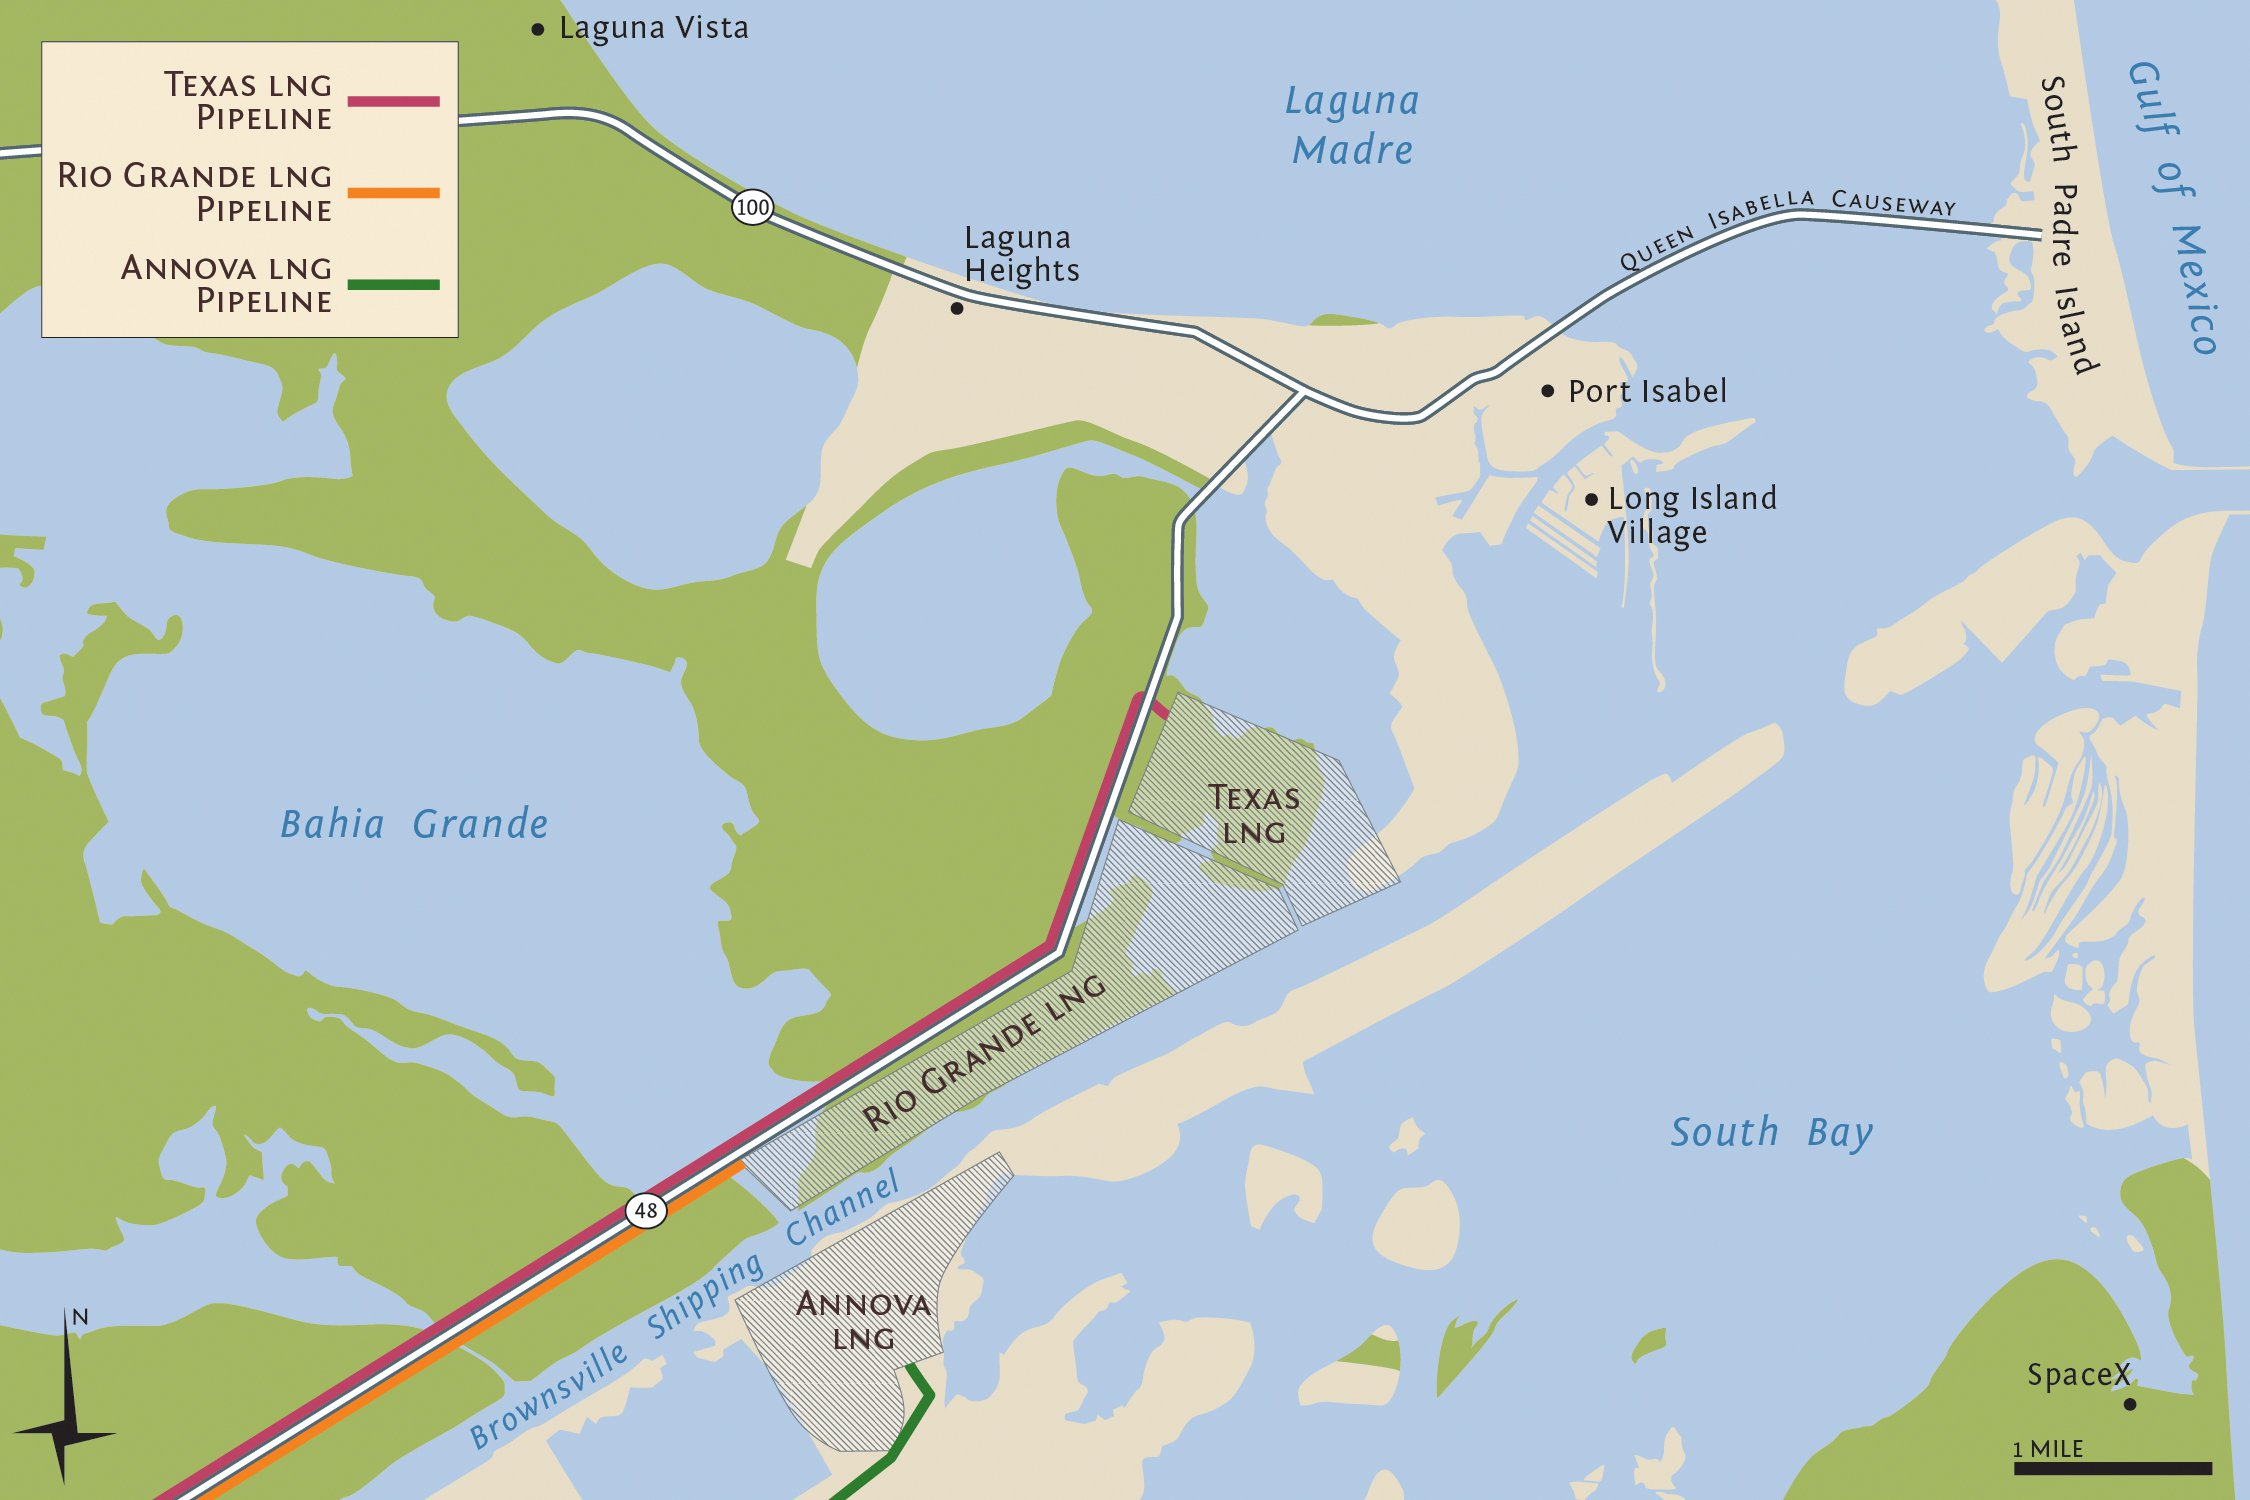 Port Isabel, Long Island Village, and Laguna Heights are as close to a mile and a half to the proposed plants.